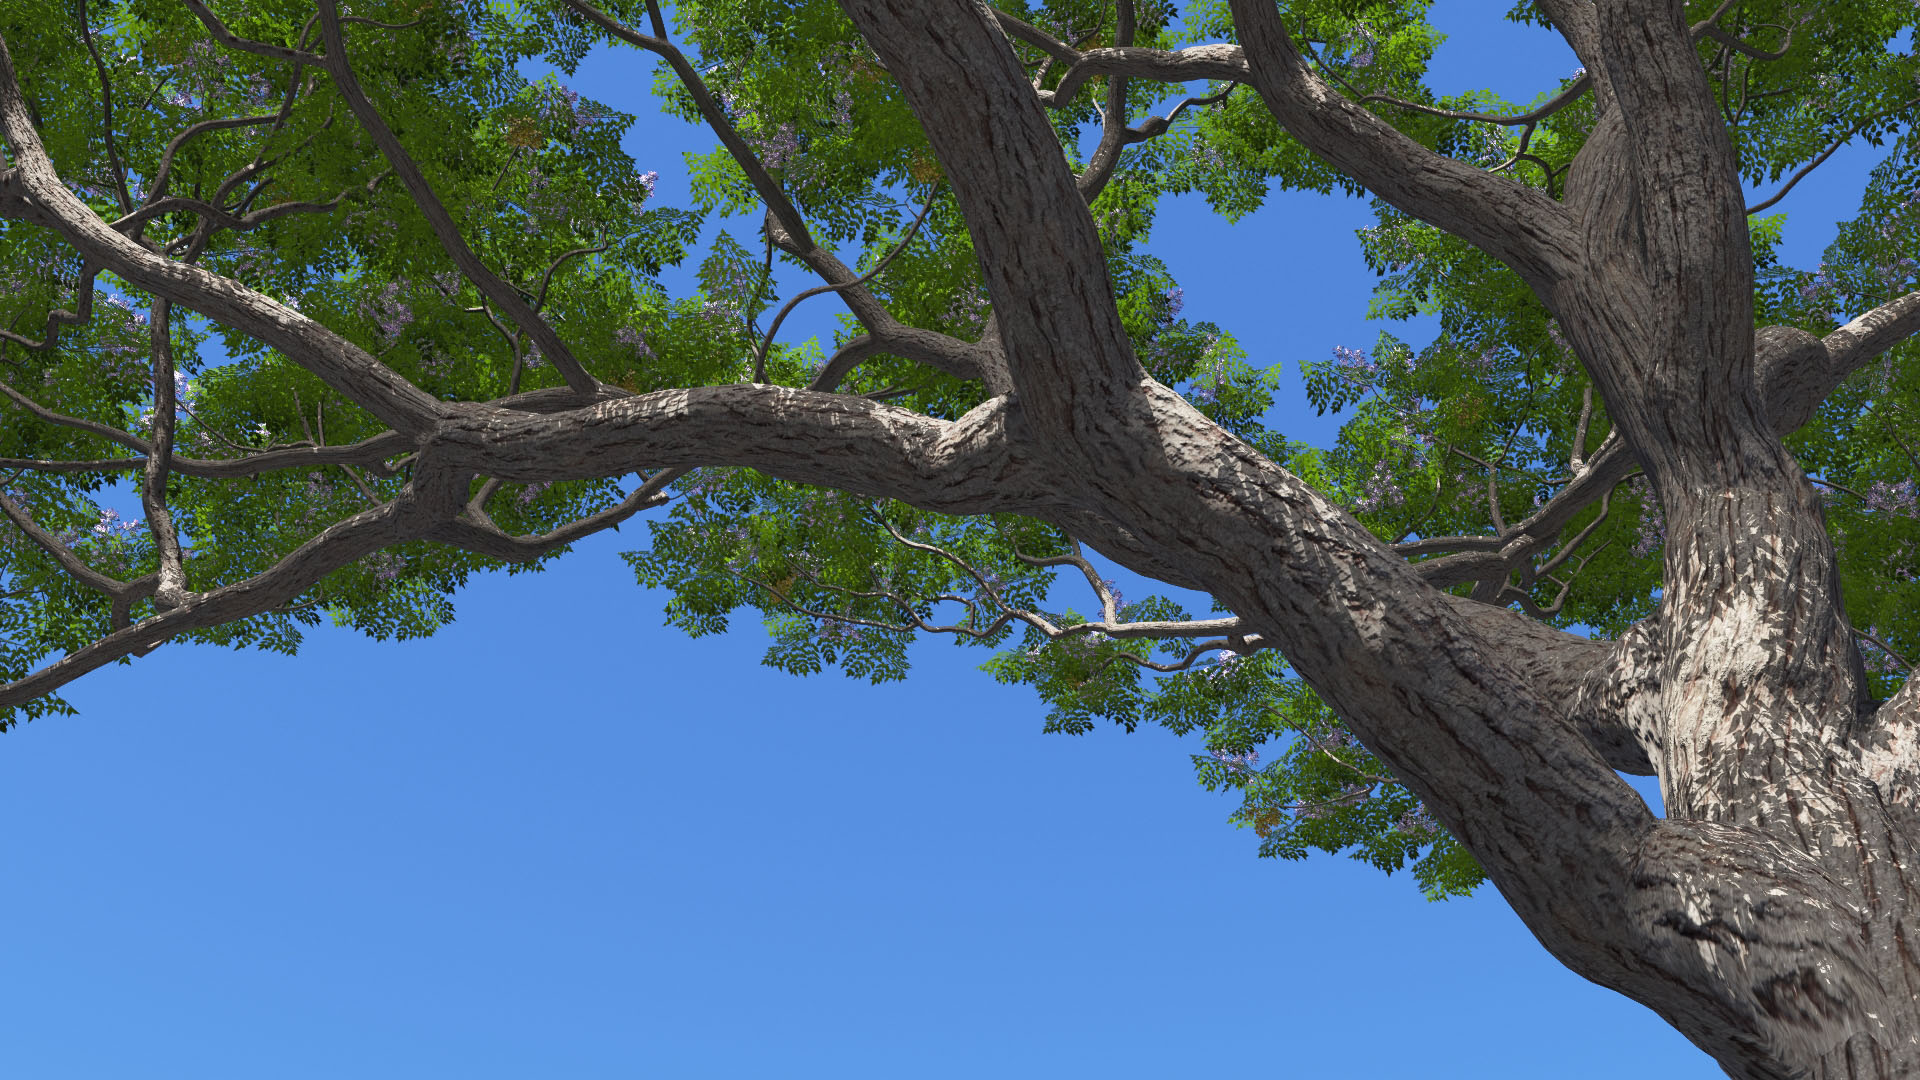 3D model of the Chinaberry tree Melia azedarach close-up